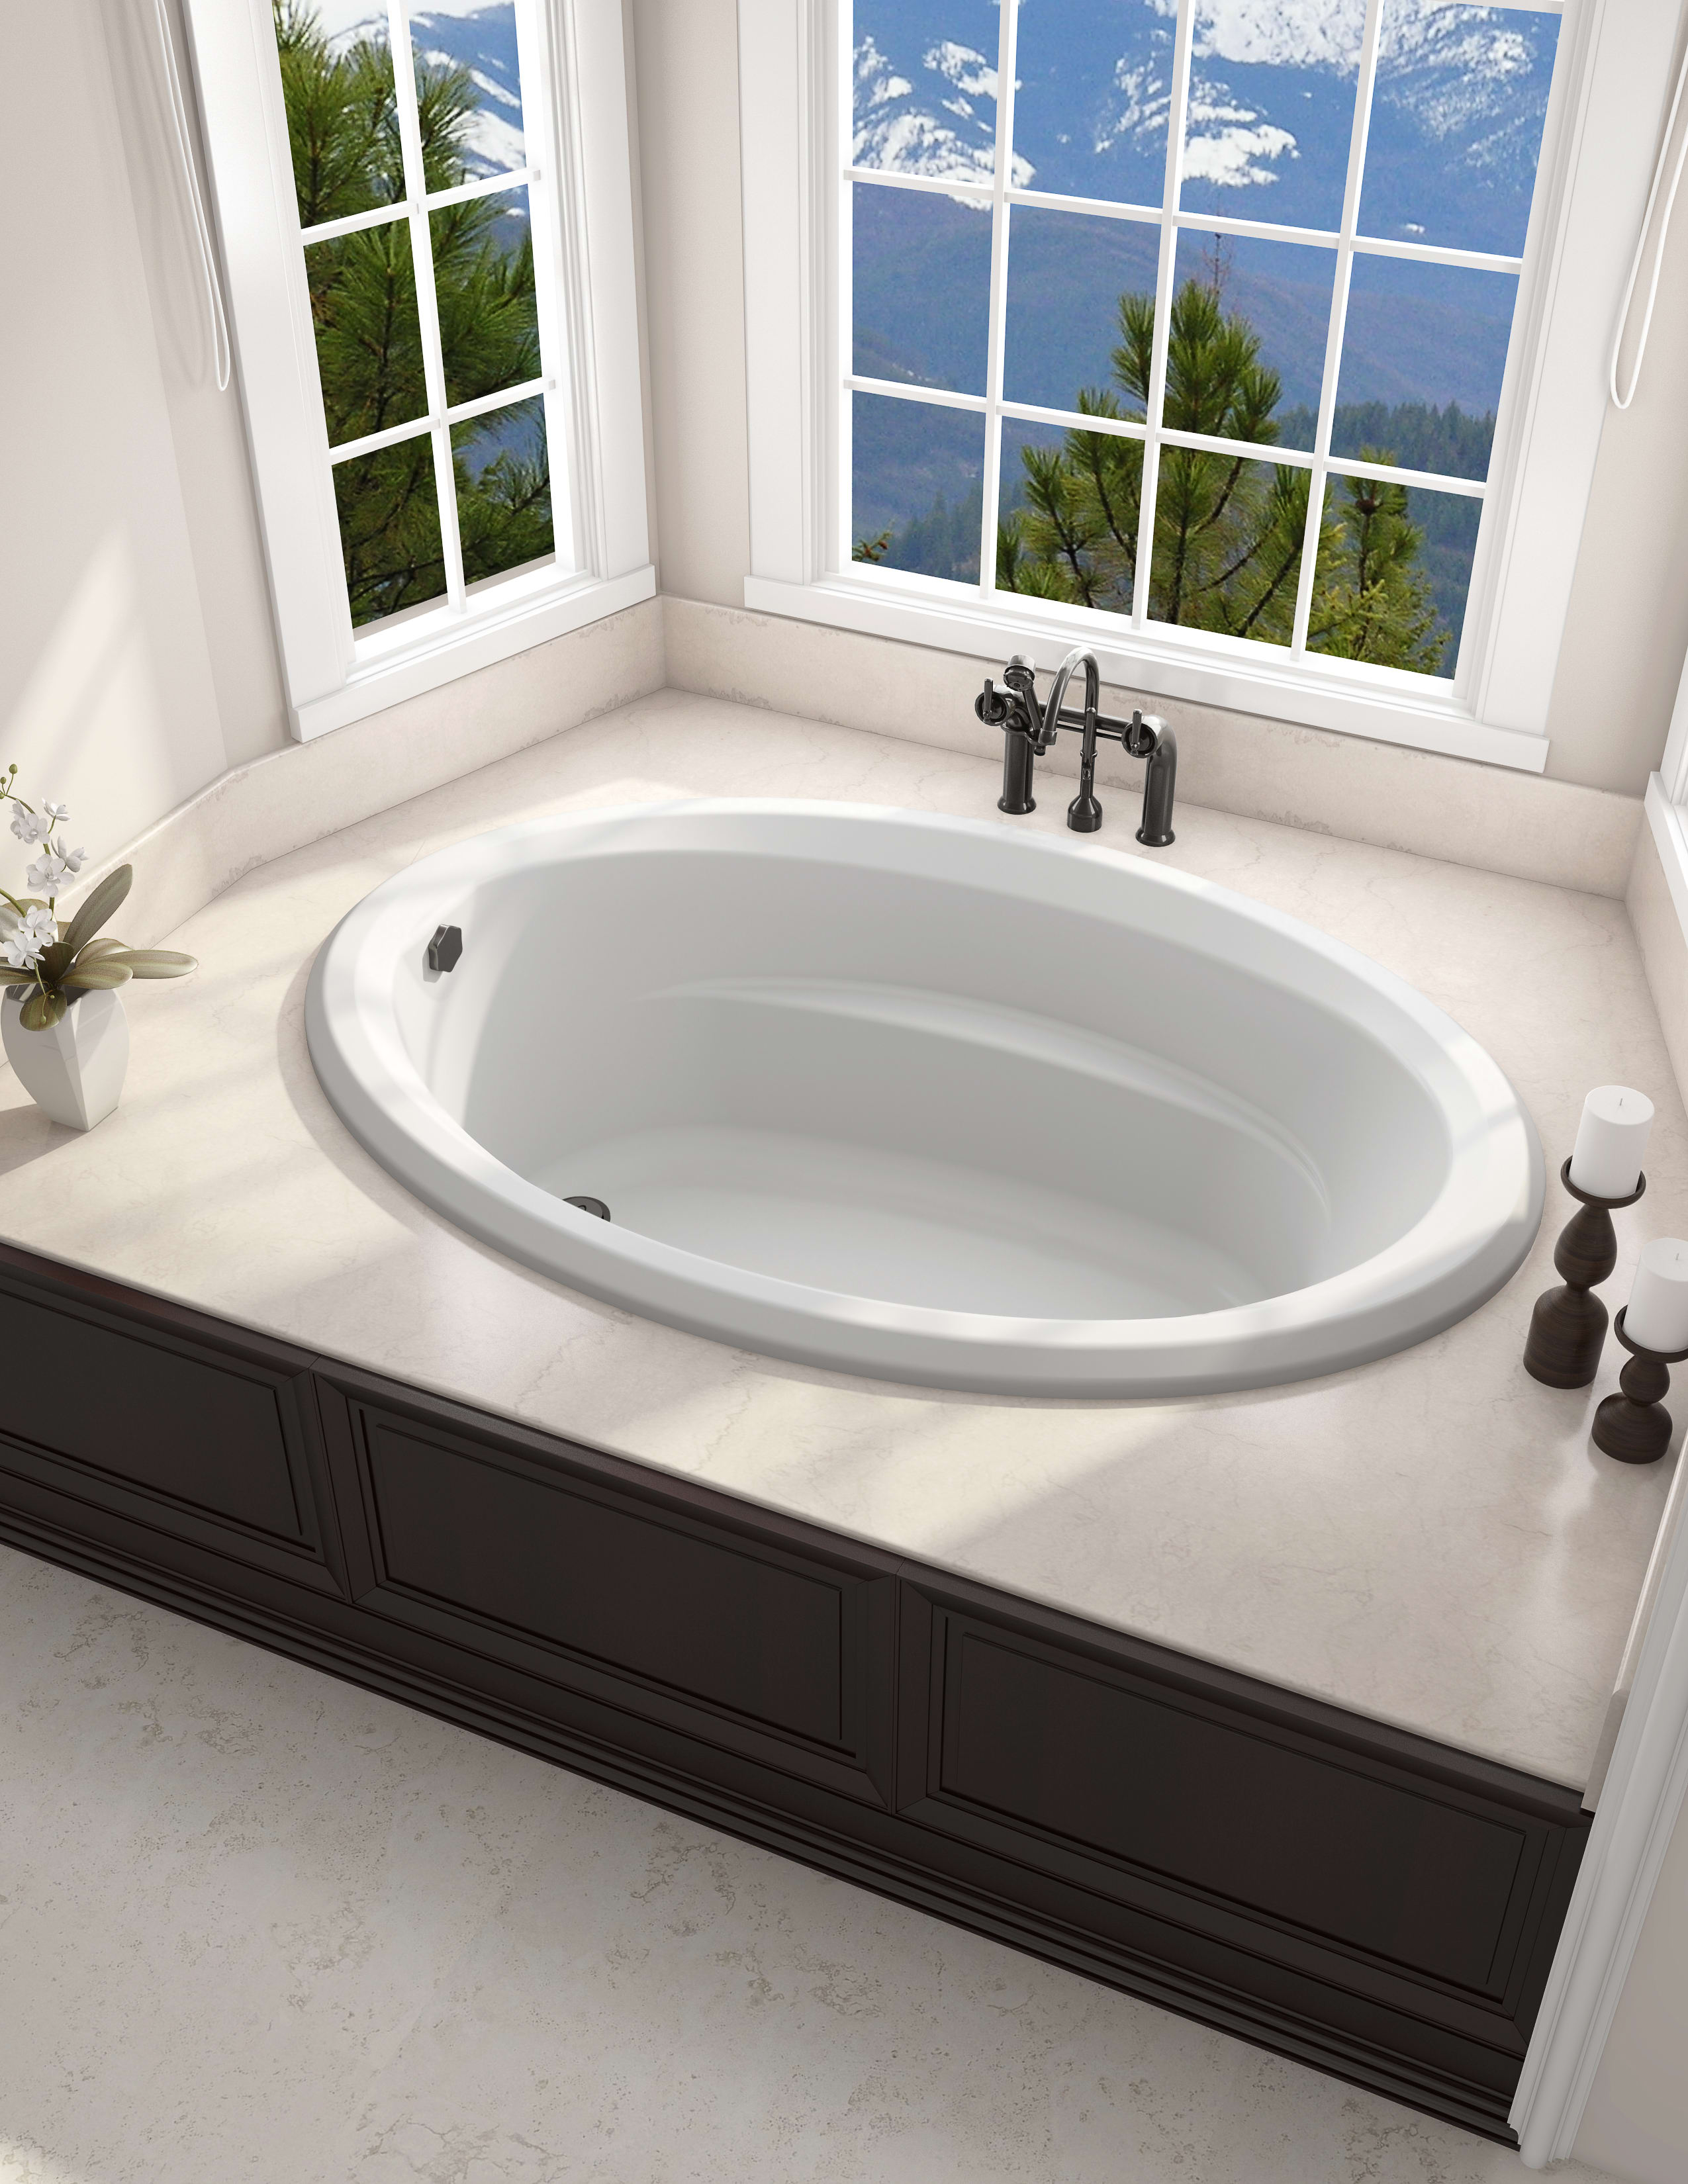 bathtub undermount drop bathtubs dropin in product baths large usa rossendale view albert us tub email gallery victoria